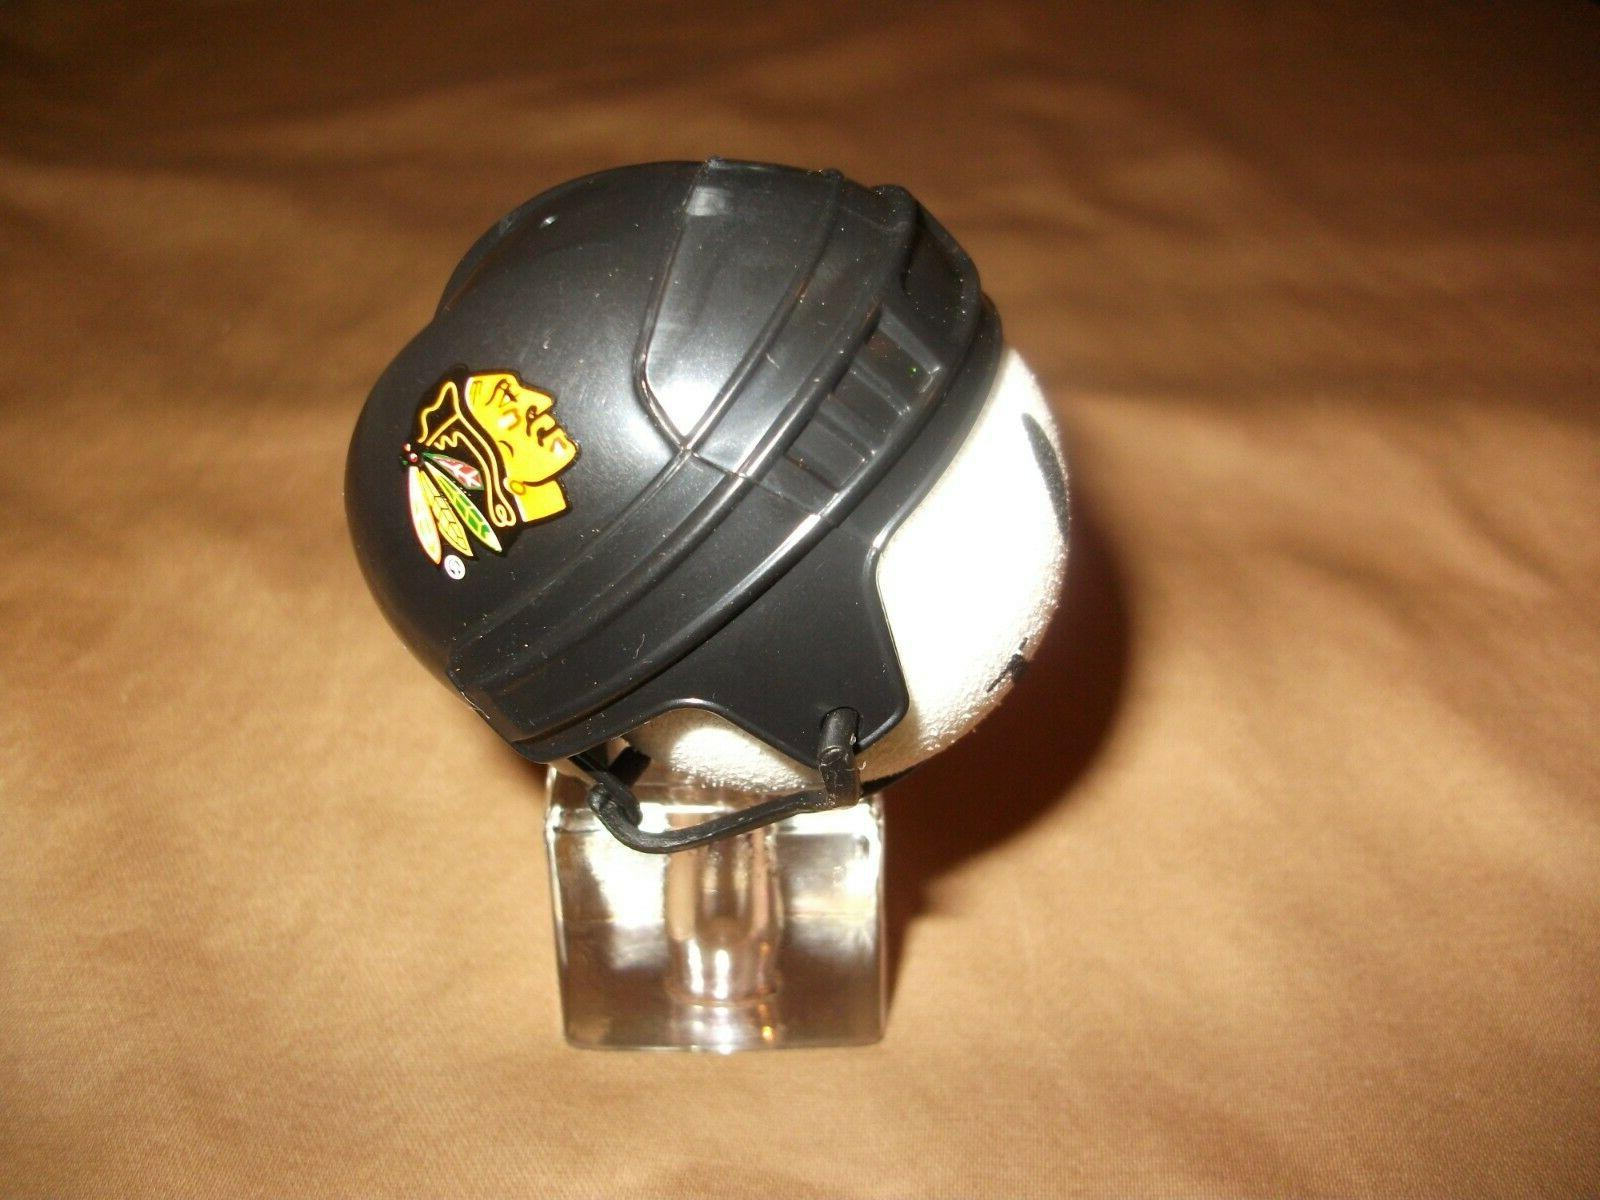 antenna topper chicago blackhawks hockey logo helmet